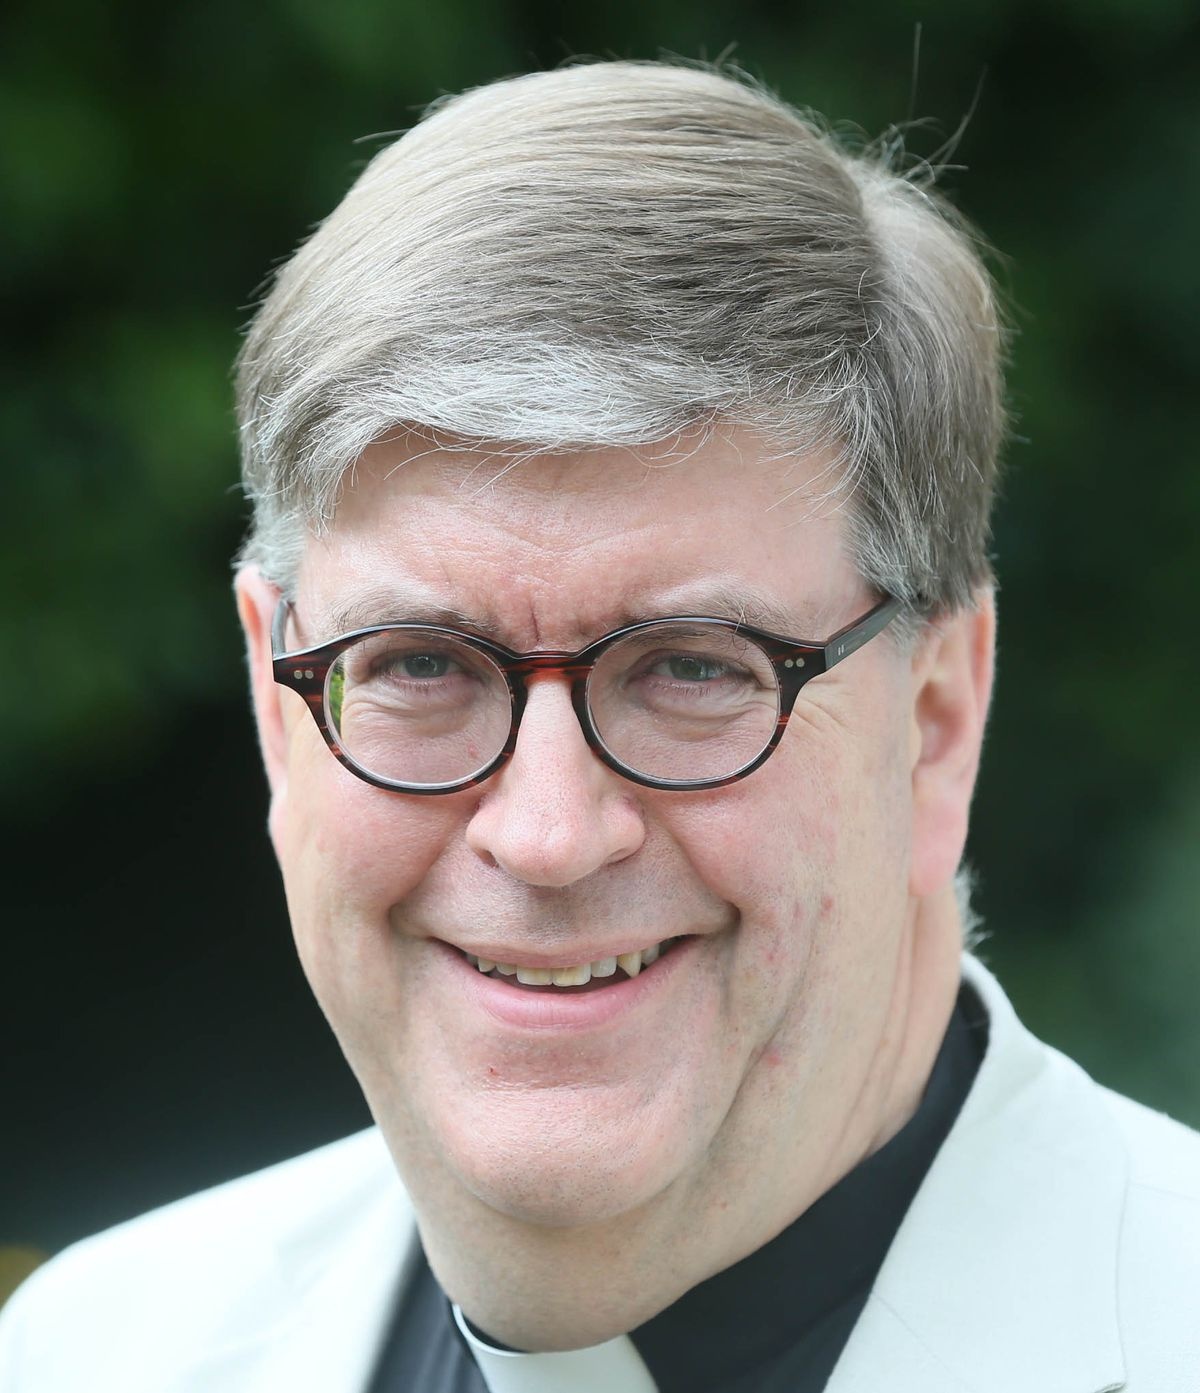 The Dean of Guernsey, the Very Rev. Tim Barker.